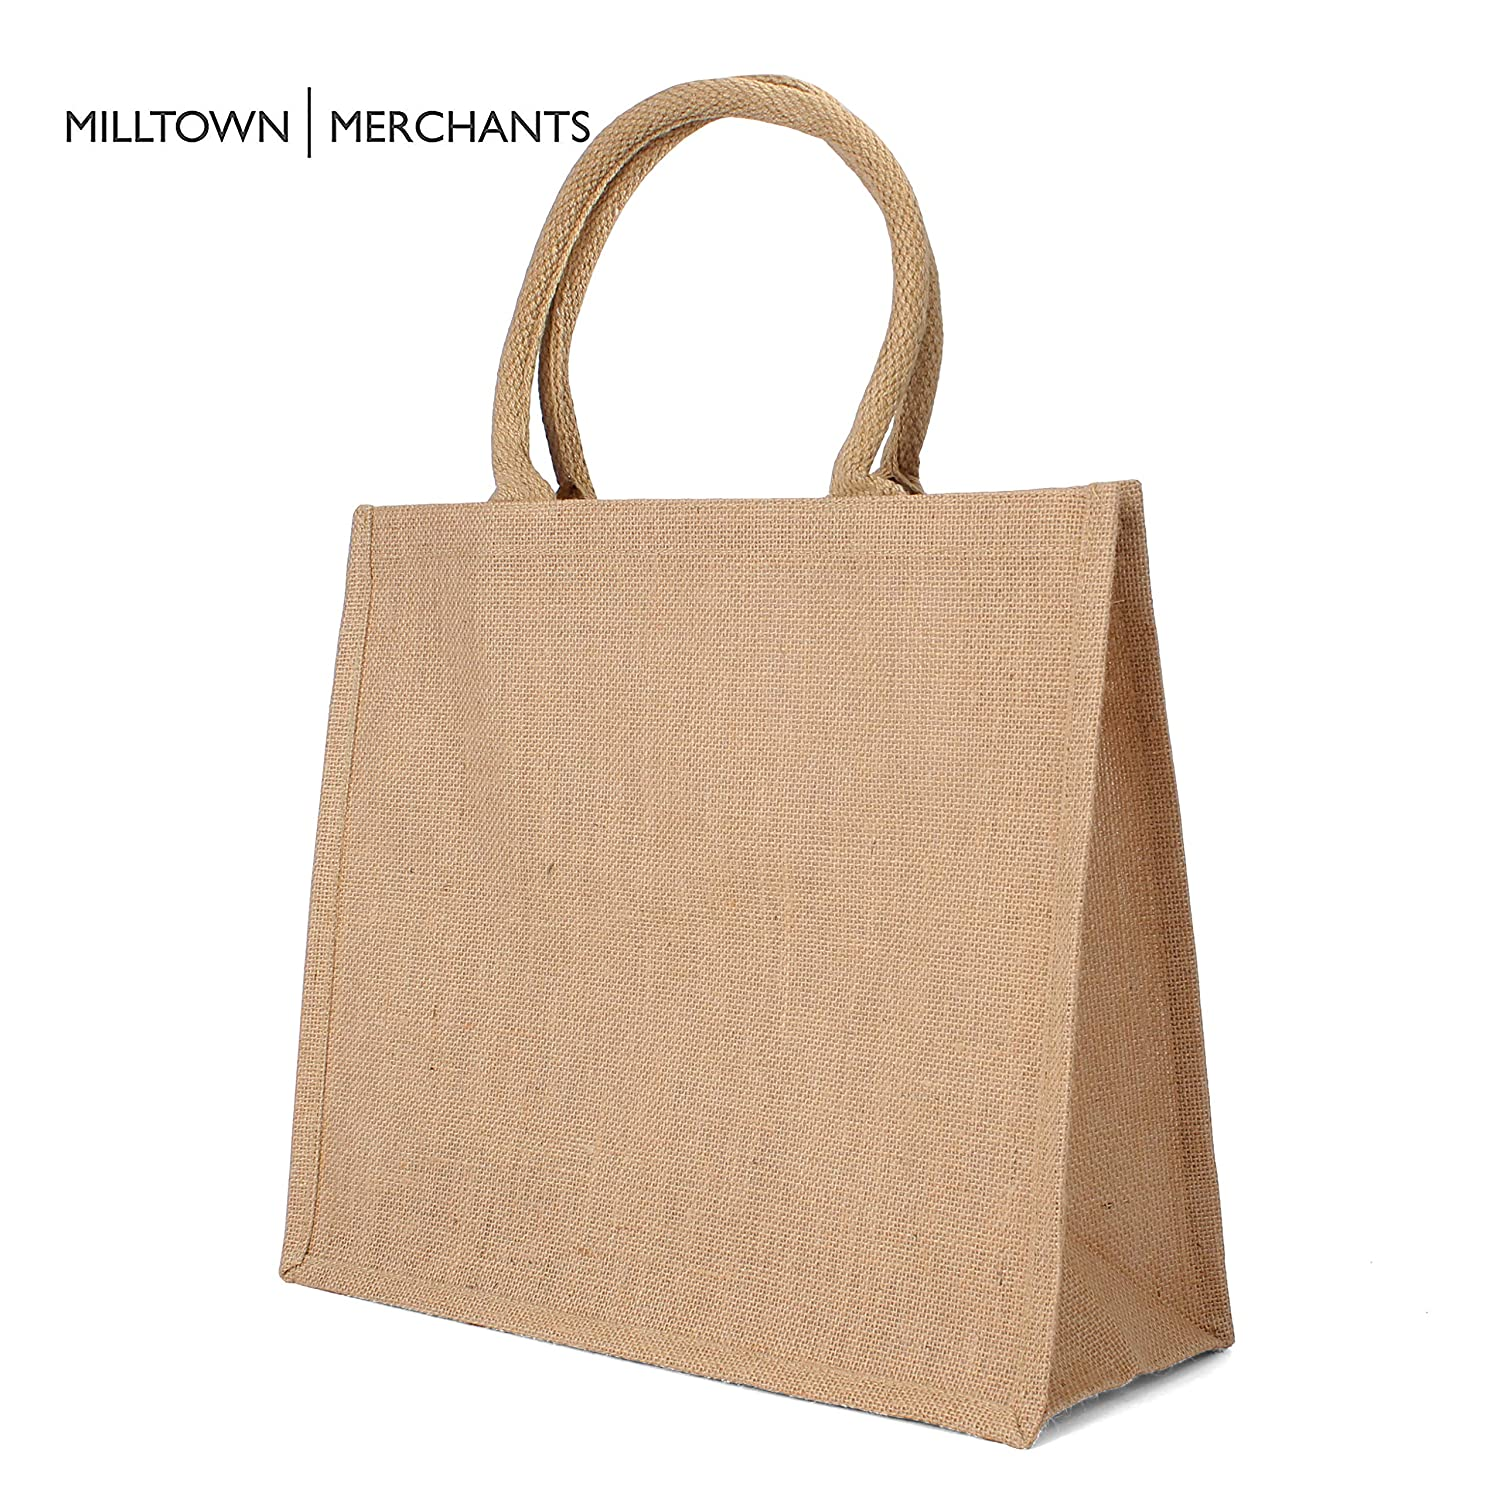 42665101f Jute Burlap Tote Bags - Natural Burlap Bags with Cotton Handles - (4  Pack/Large) - Reusable Tote Bags with Laminated Interior - Shopping Bag/Grocery  ...